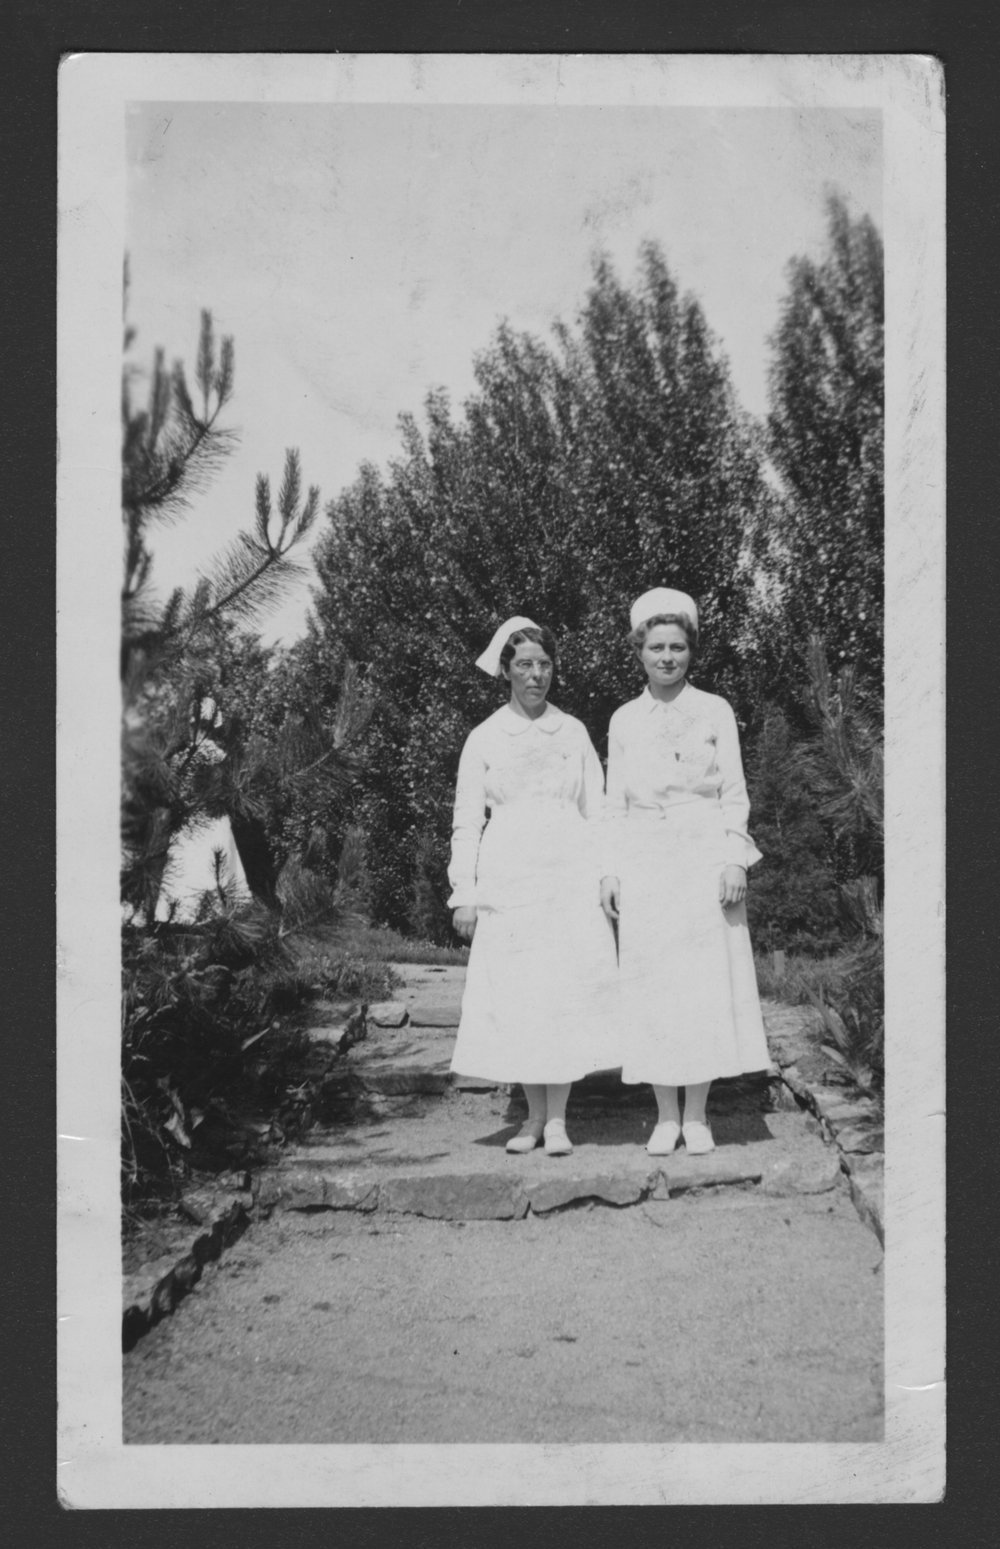 Menninger Clinc Sanitarium staff, Southard School - Nurses Gladys Stilson and Isabel Erickson in 1936.